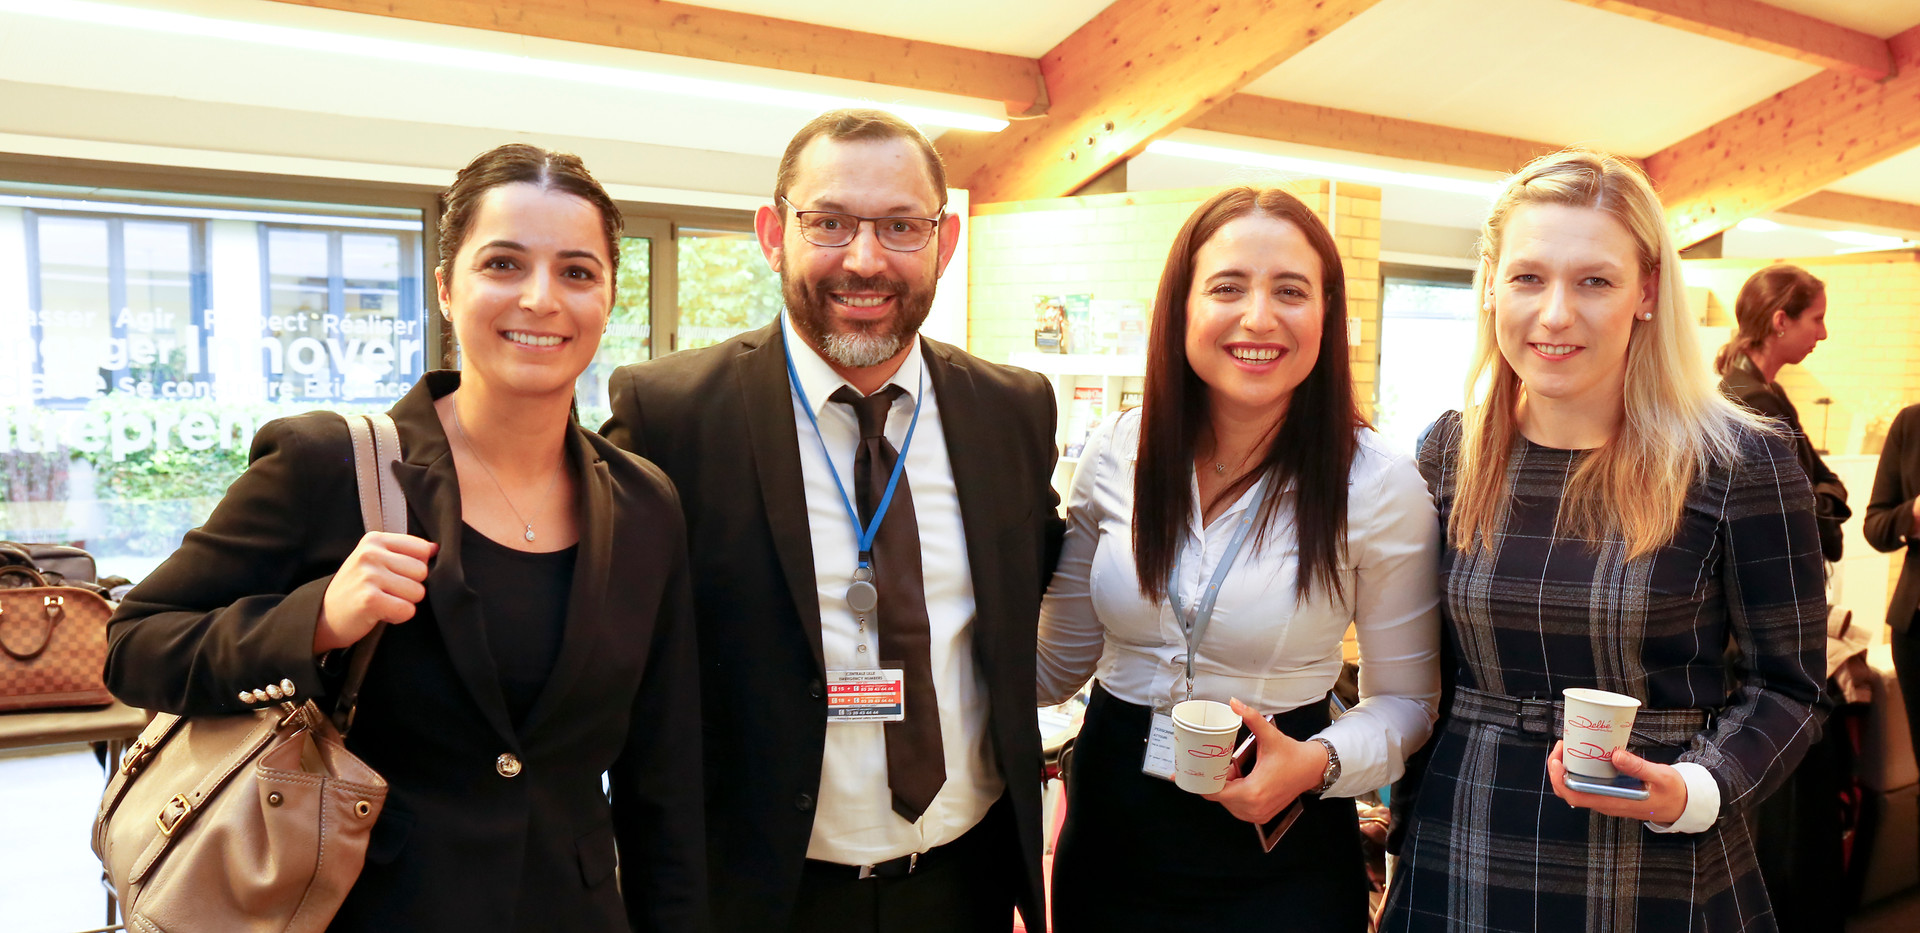 Olfa Hamdi with Conference Attendees